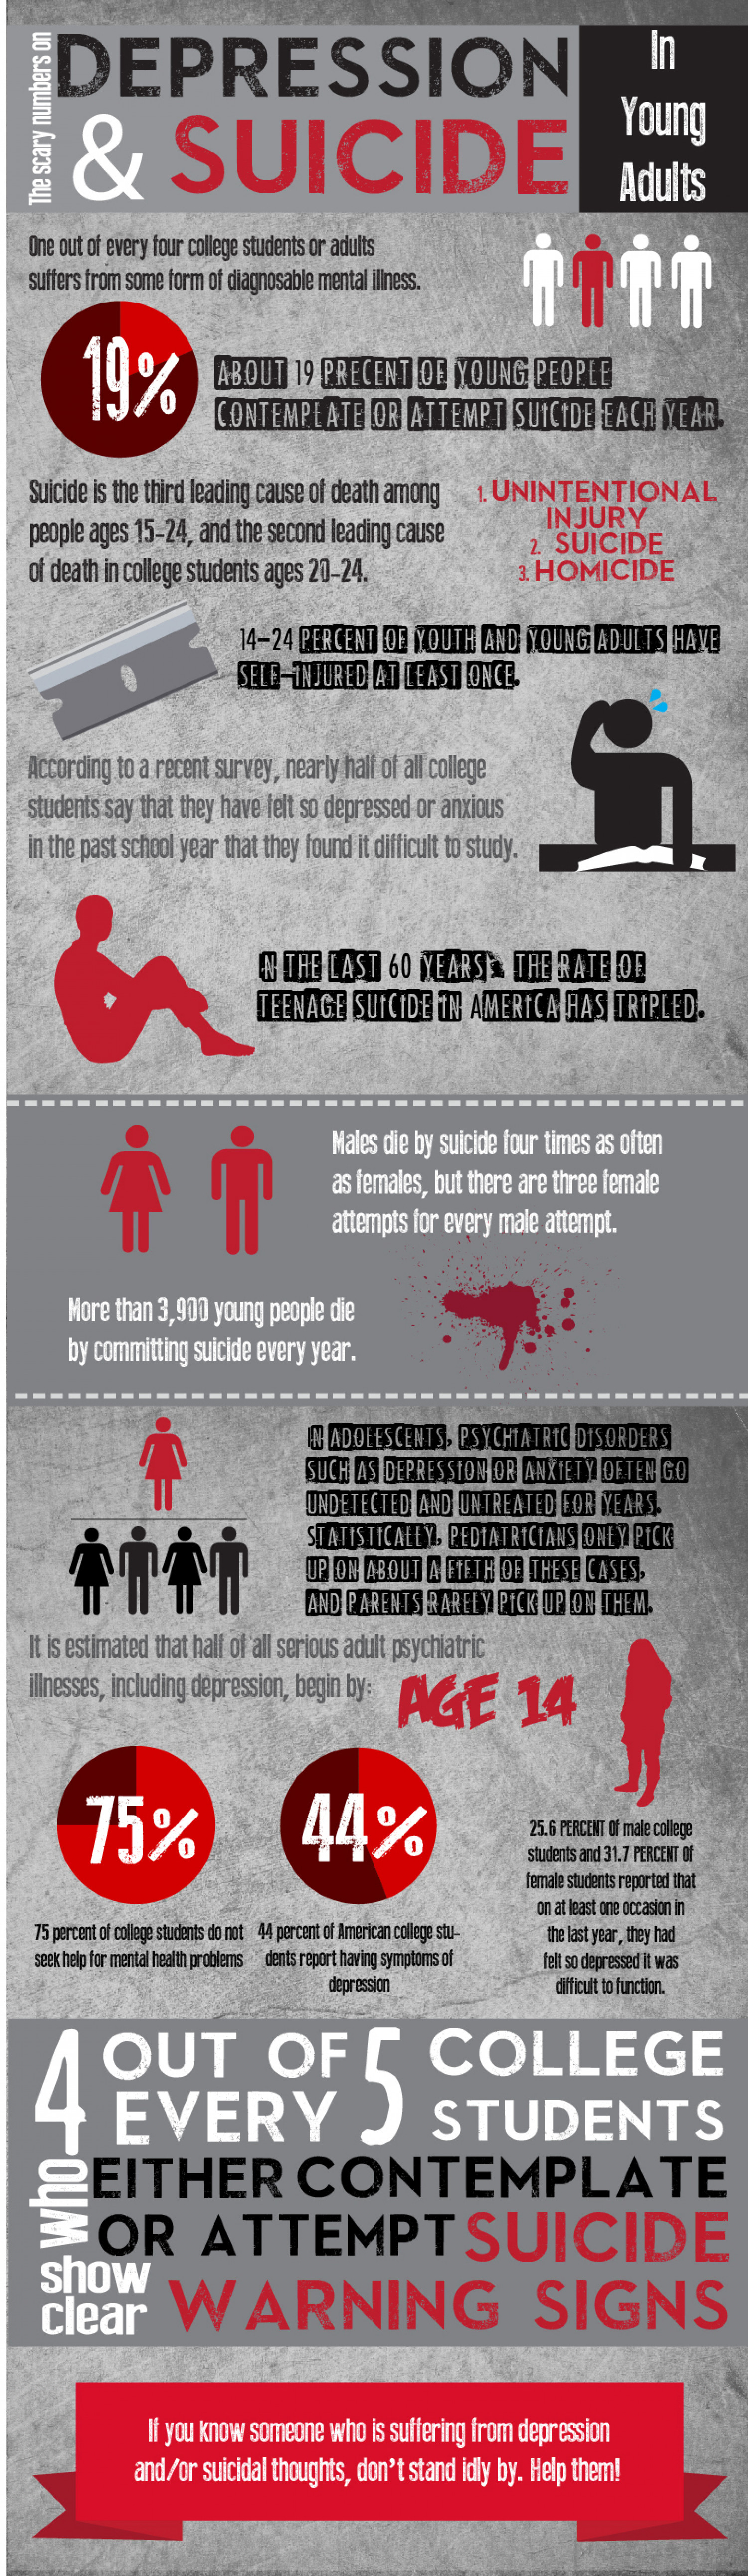 Depression And Suicide In Young Adults